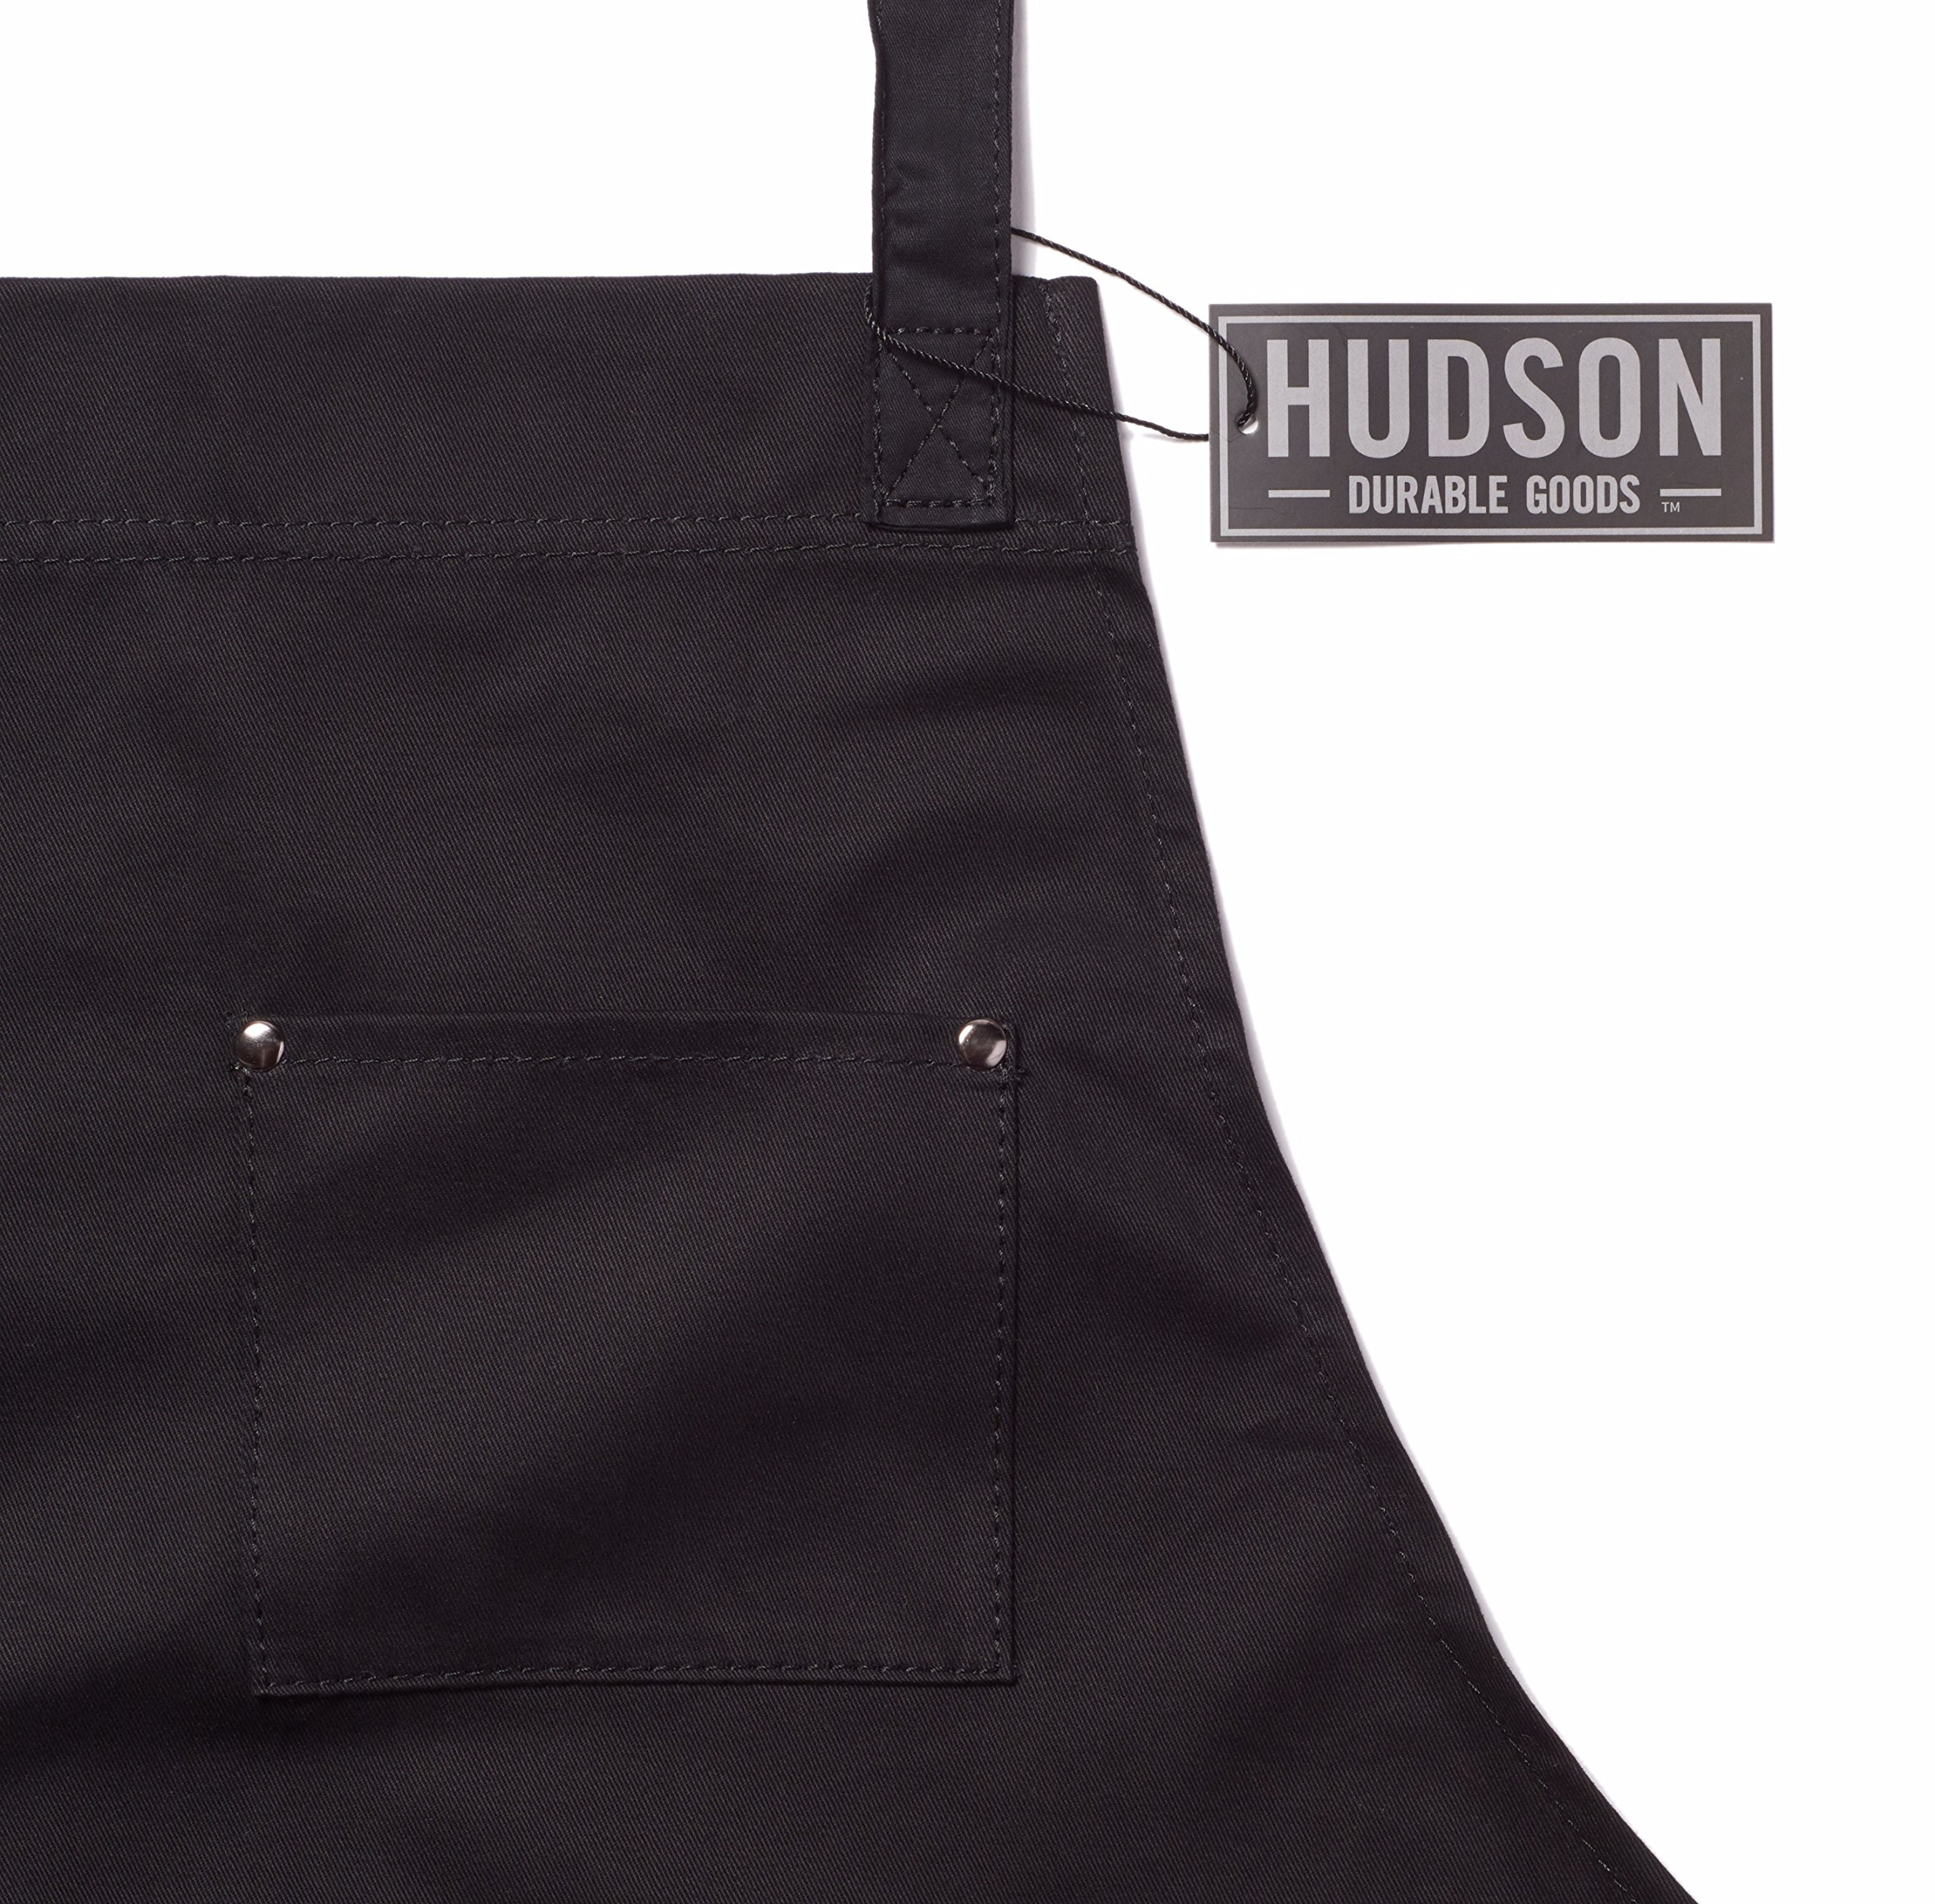 Hudson Durable Goods - Professional Grade Chef Apron for Kitchen, BBQ, and Grill (Black) with Towel Loop + Tool Pockets + Quick Release Buckle, Adjustable M to XXL by Hudson Durable Goods (Image #6)